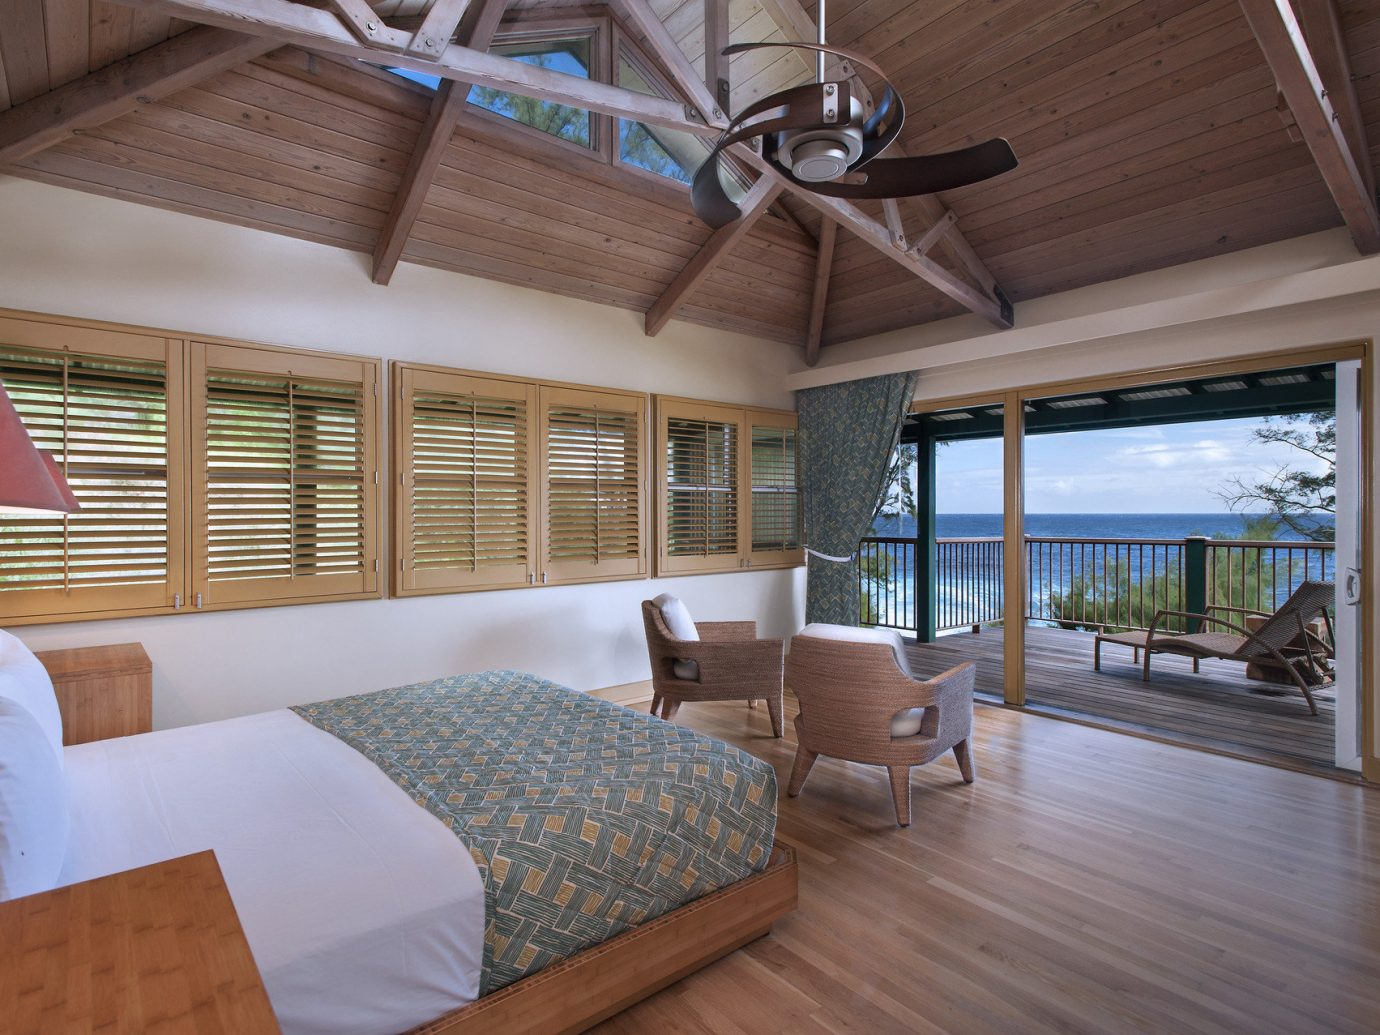 Balcony Beach bed Bedroom Boutique Hotels charming Hotels interior lounge chairs Luxury Luxury Travel Ocean ocean view quaint remote Rustic indoor floor room ceiling property house estate home Living real estate interior design living room cottage furniture wood Design condominium Villa area